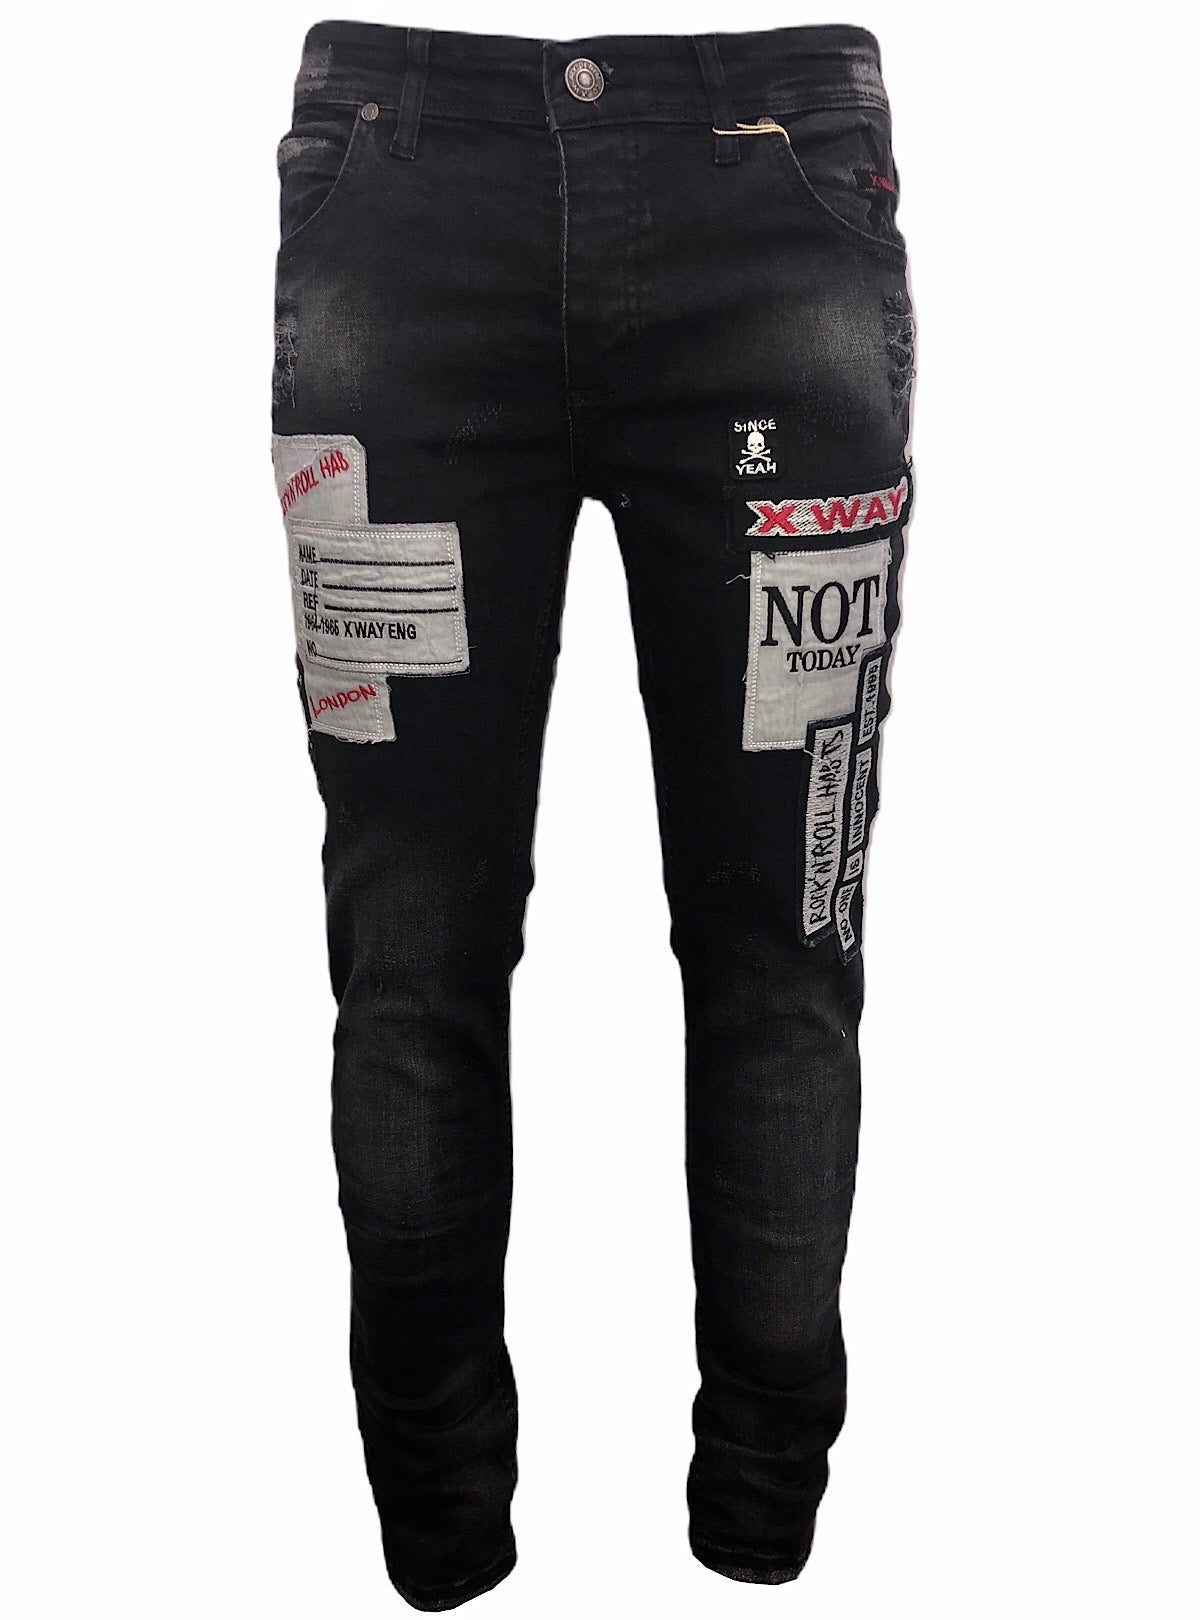 X-Way Jeans - Not Today - Black - 6031-R1